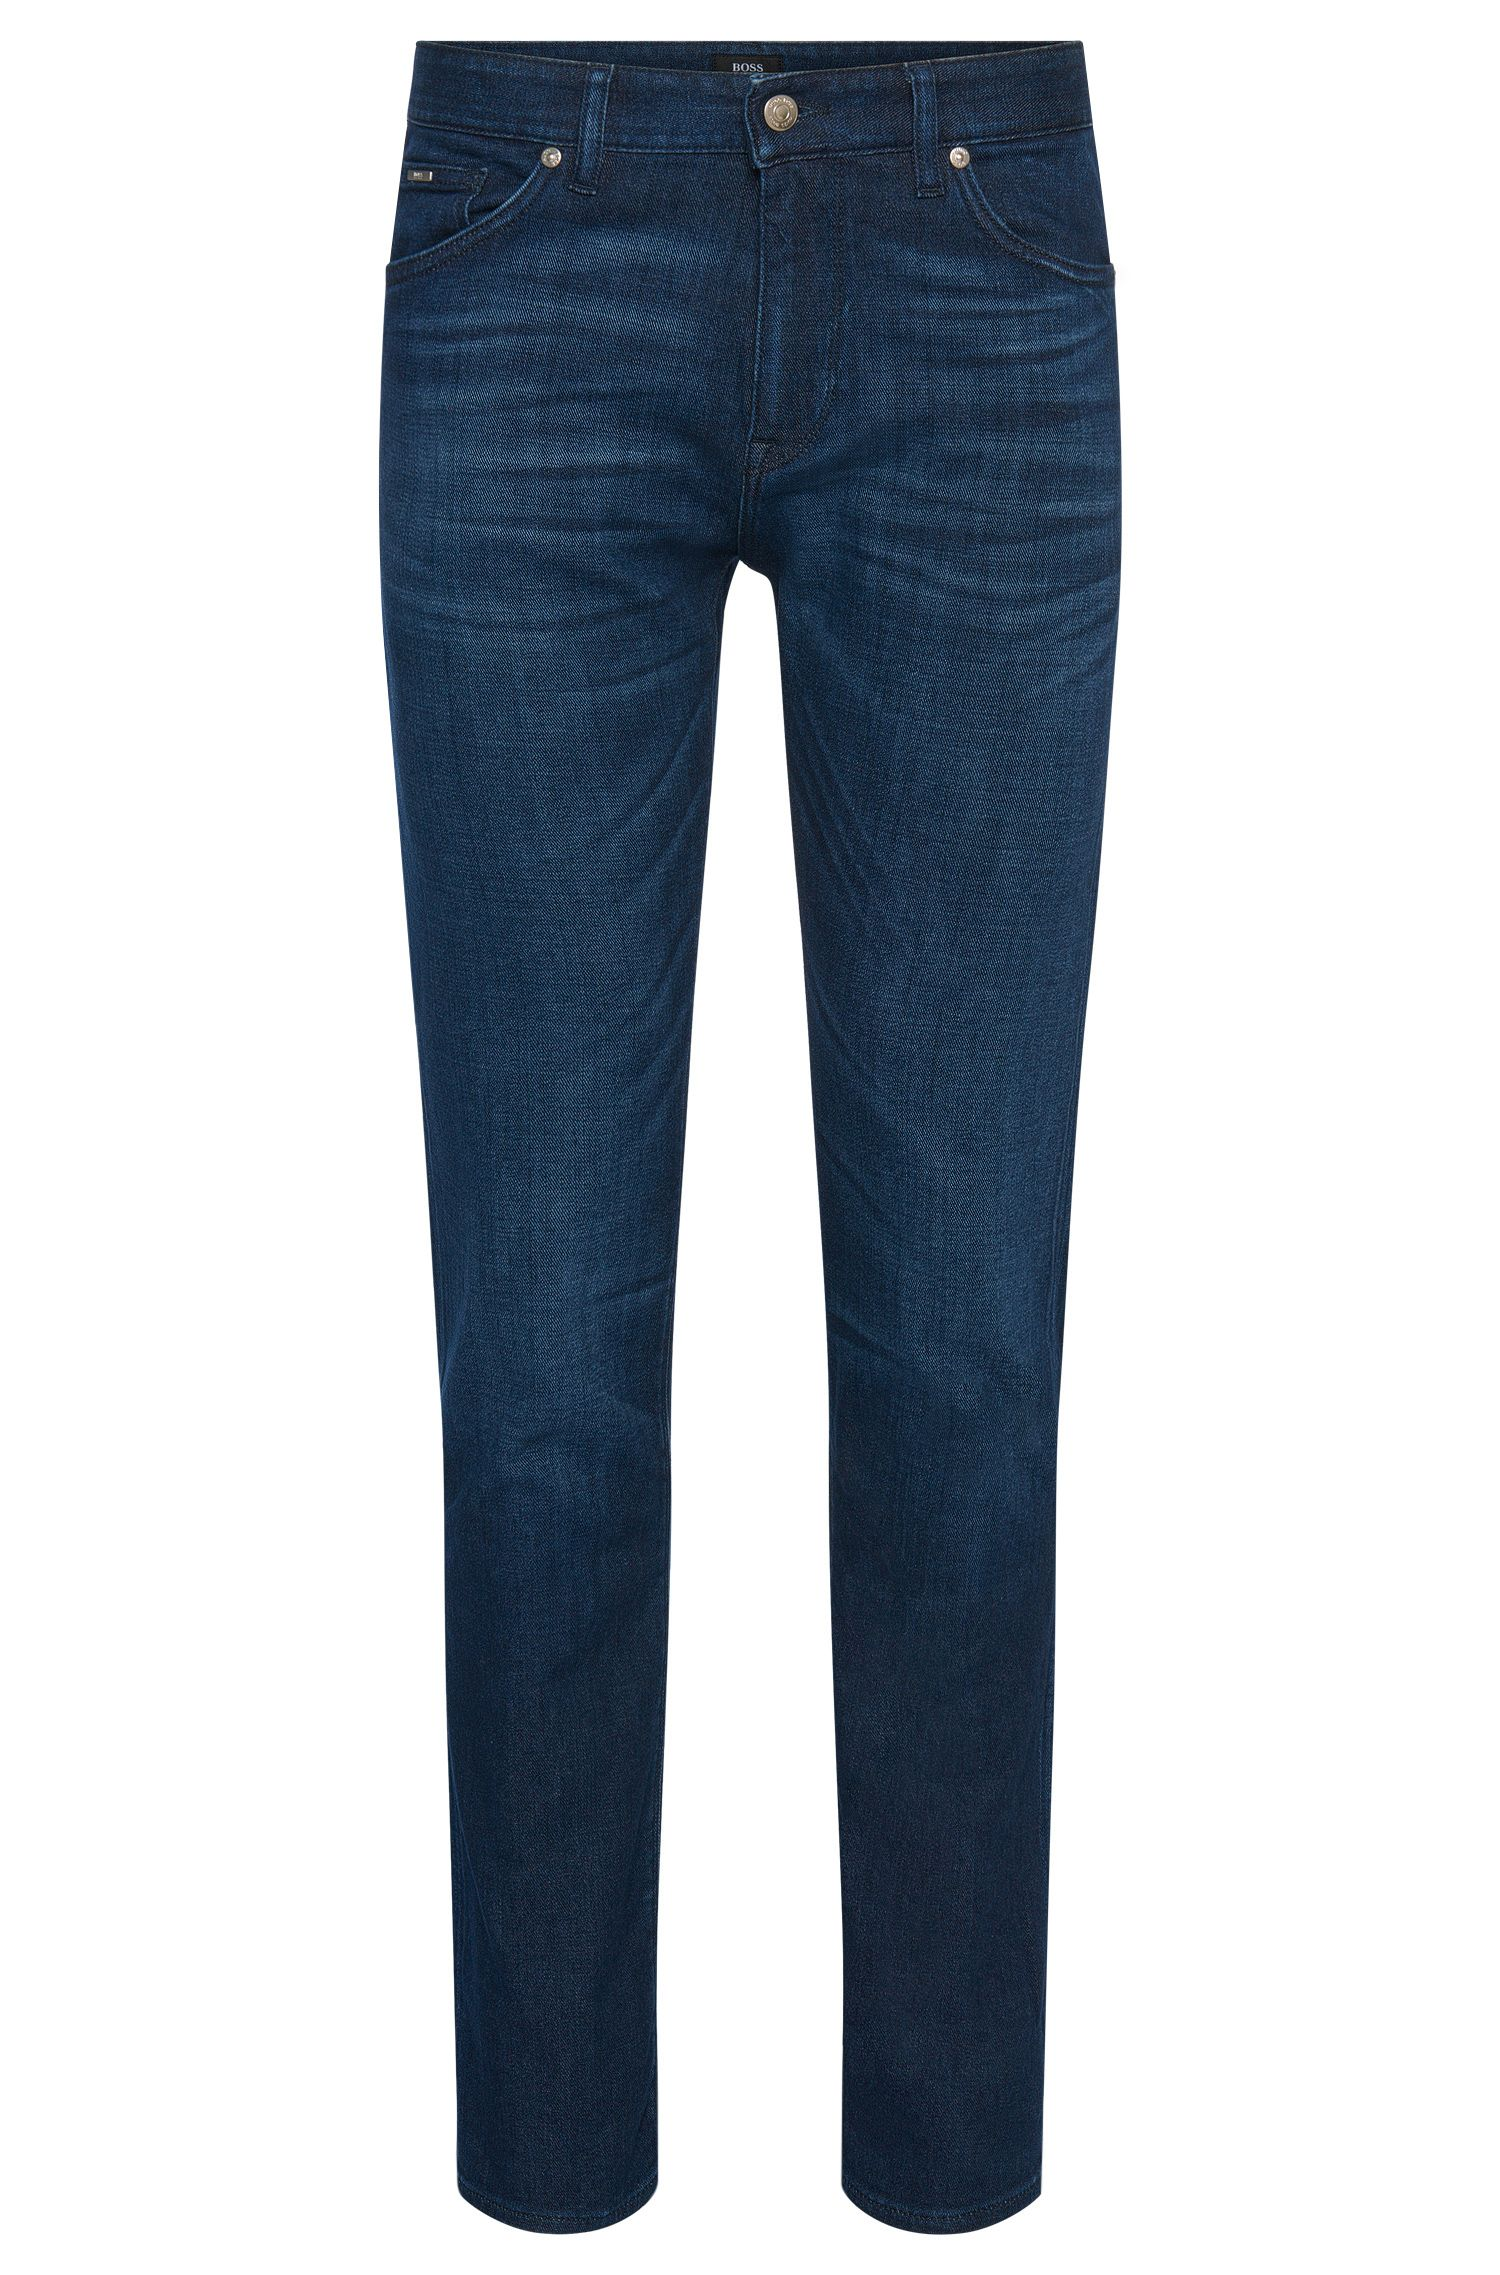 'Maine' | Regular Fit, 10 oz Stretch Cotton Blend Jeans